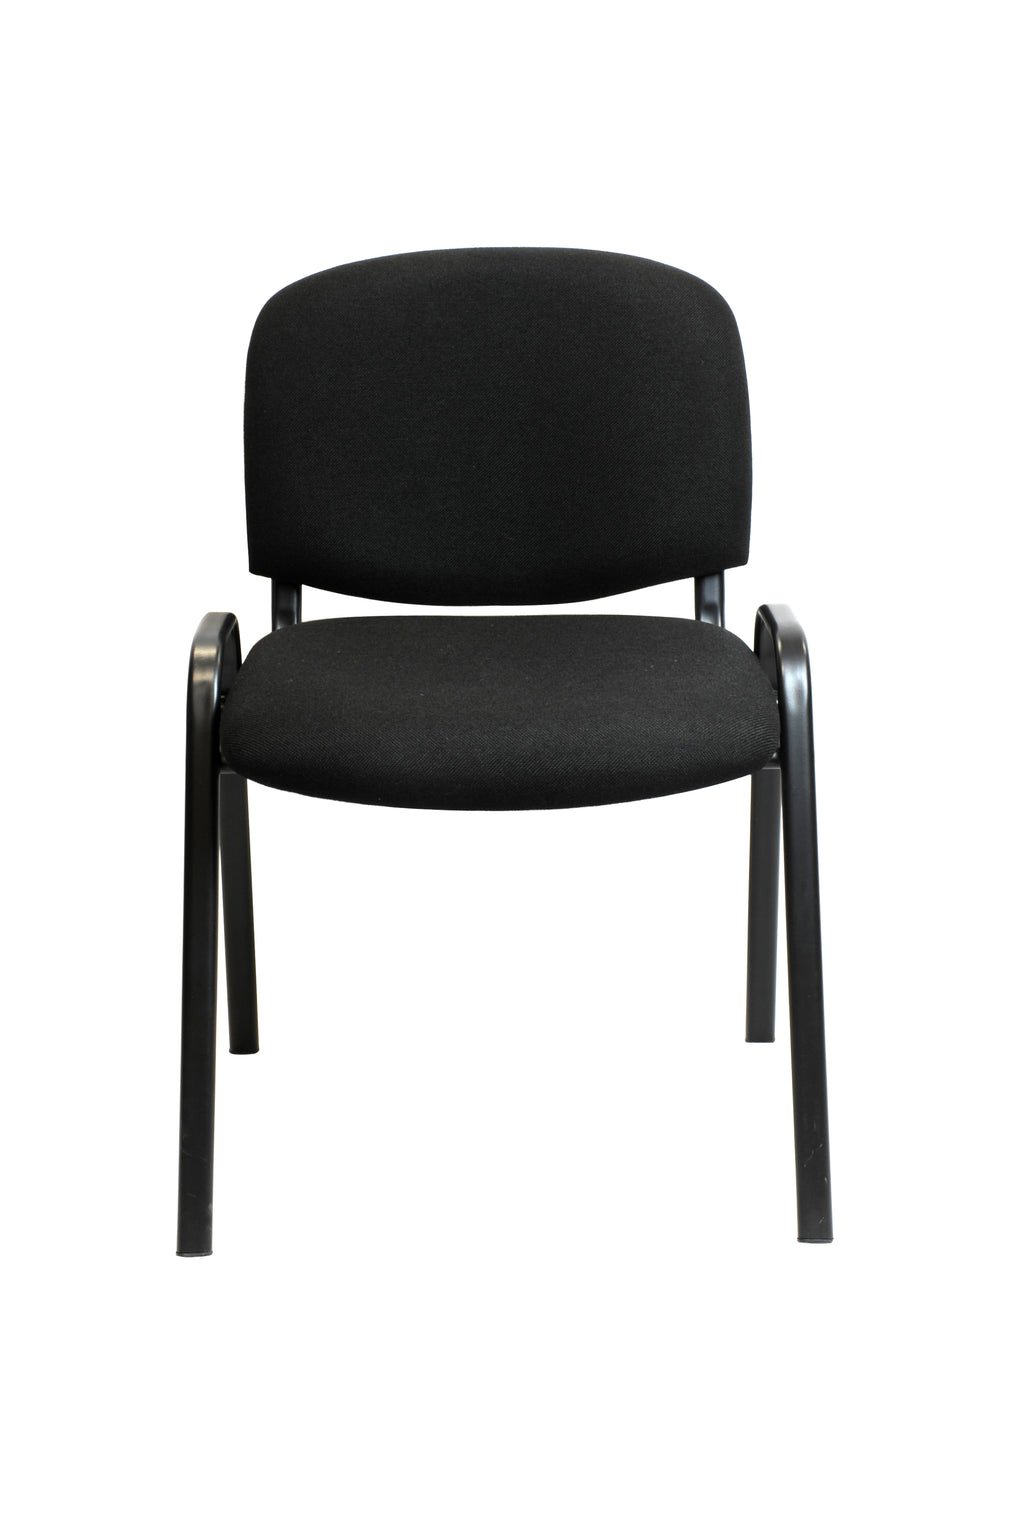 Easy Stackable Visitor Chair - KiPP